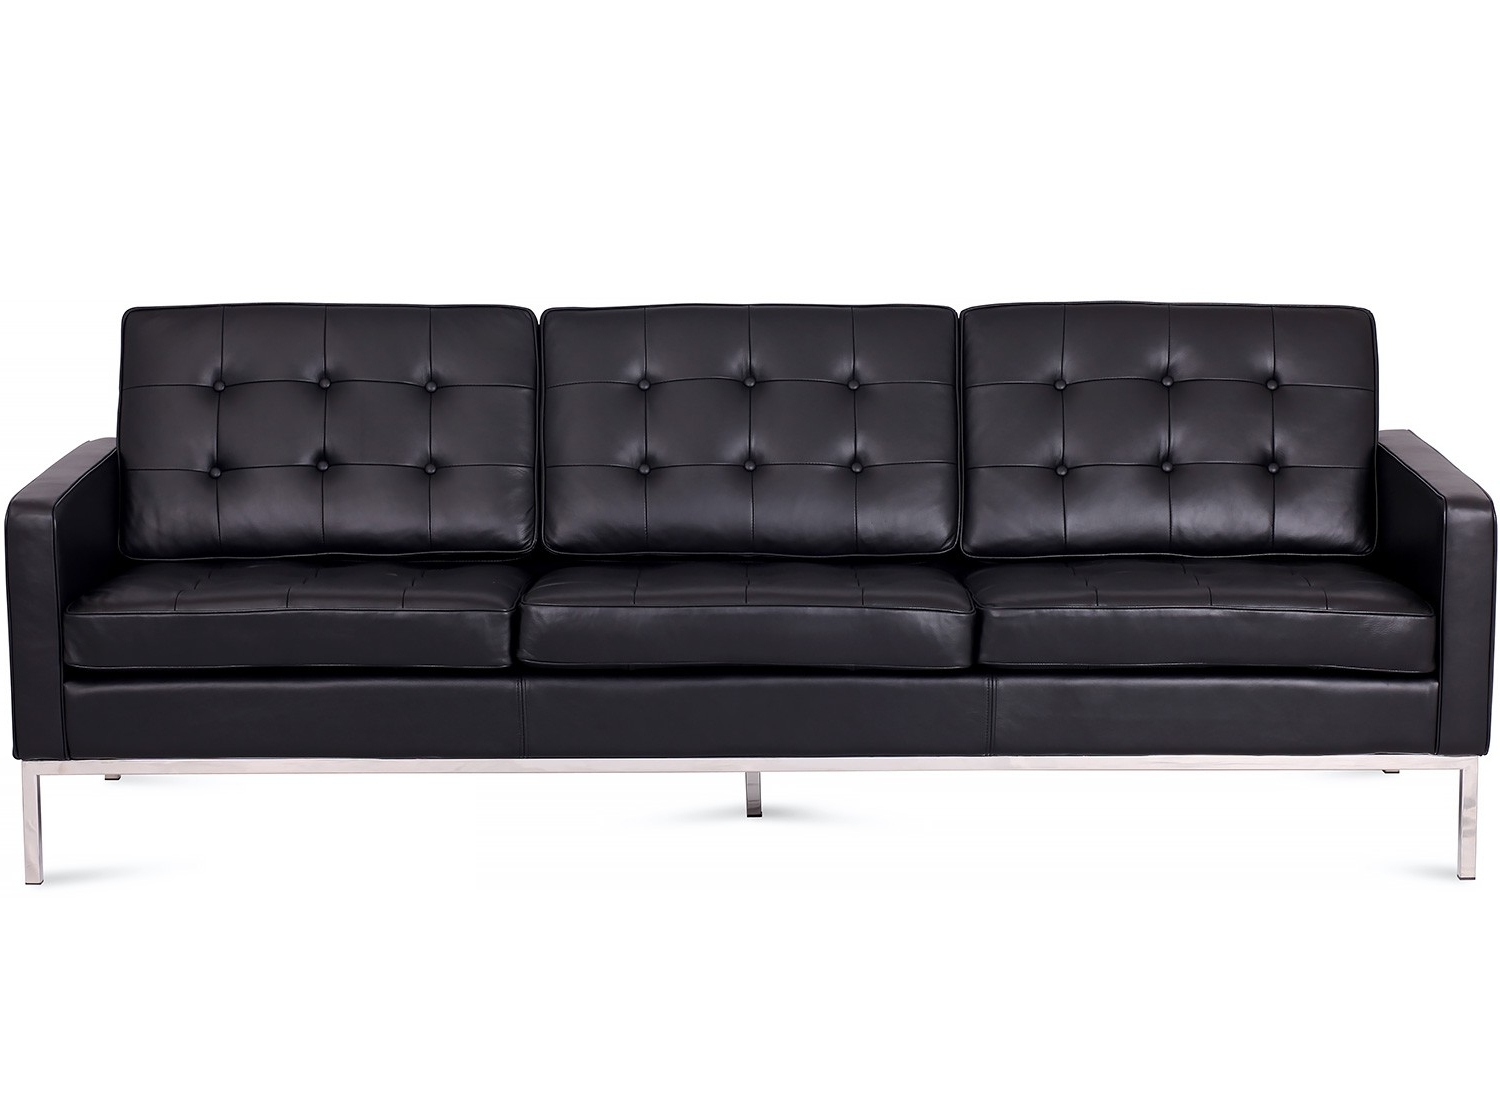 Well Liked Florence Knoll 3 Seater Sofas Inside Florence Knoll Sofa 3 Seater Leather (Platinum Replica) (View 18 of 20)